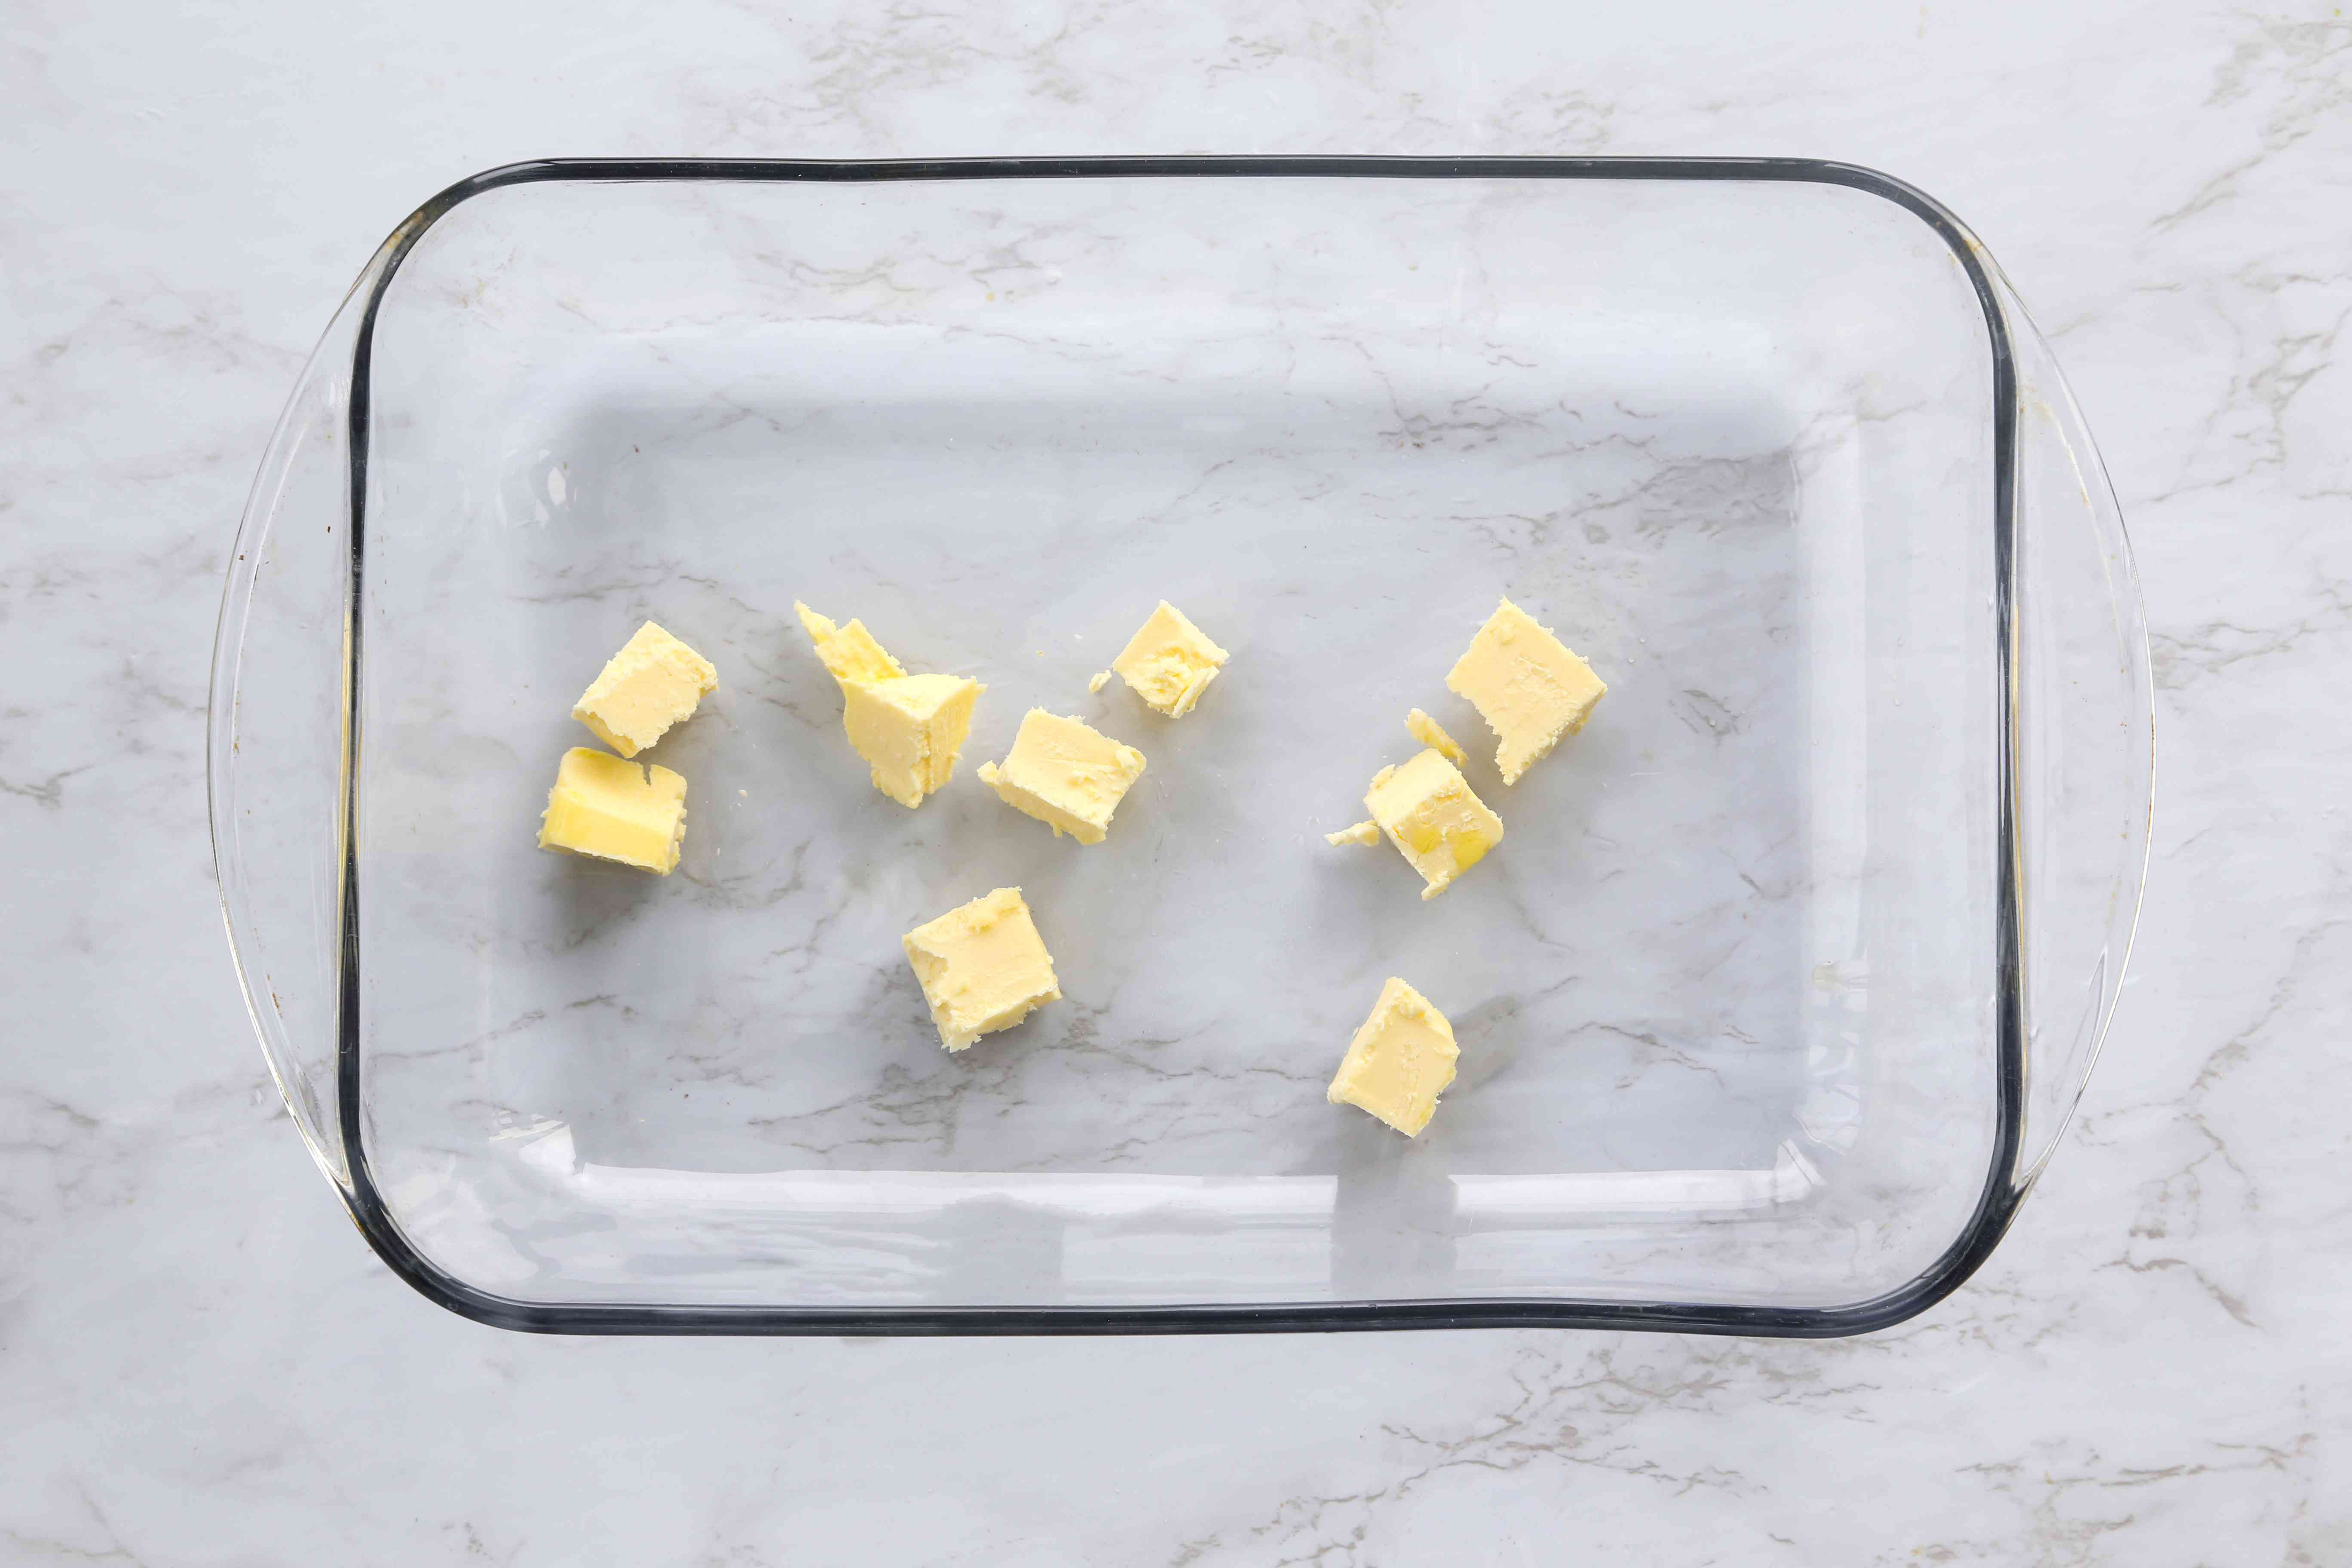 butter in a baking dish